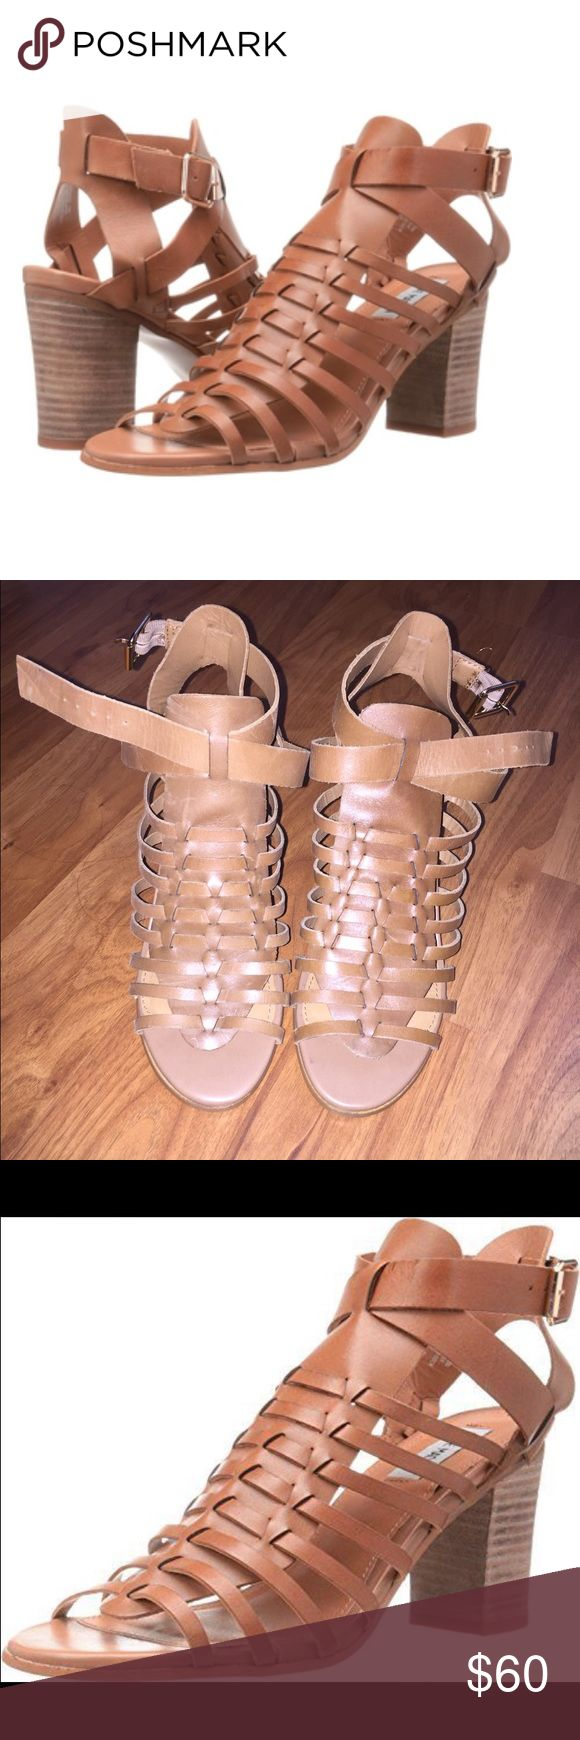 Brown strappy heels Brown gladiator like strappy heels. They are a size 6.5 but can fit 7. Leather Steve Madden Shoes Ankle Boots & Booties